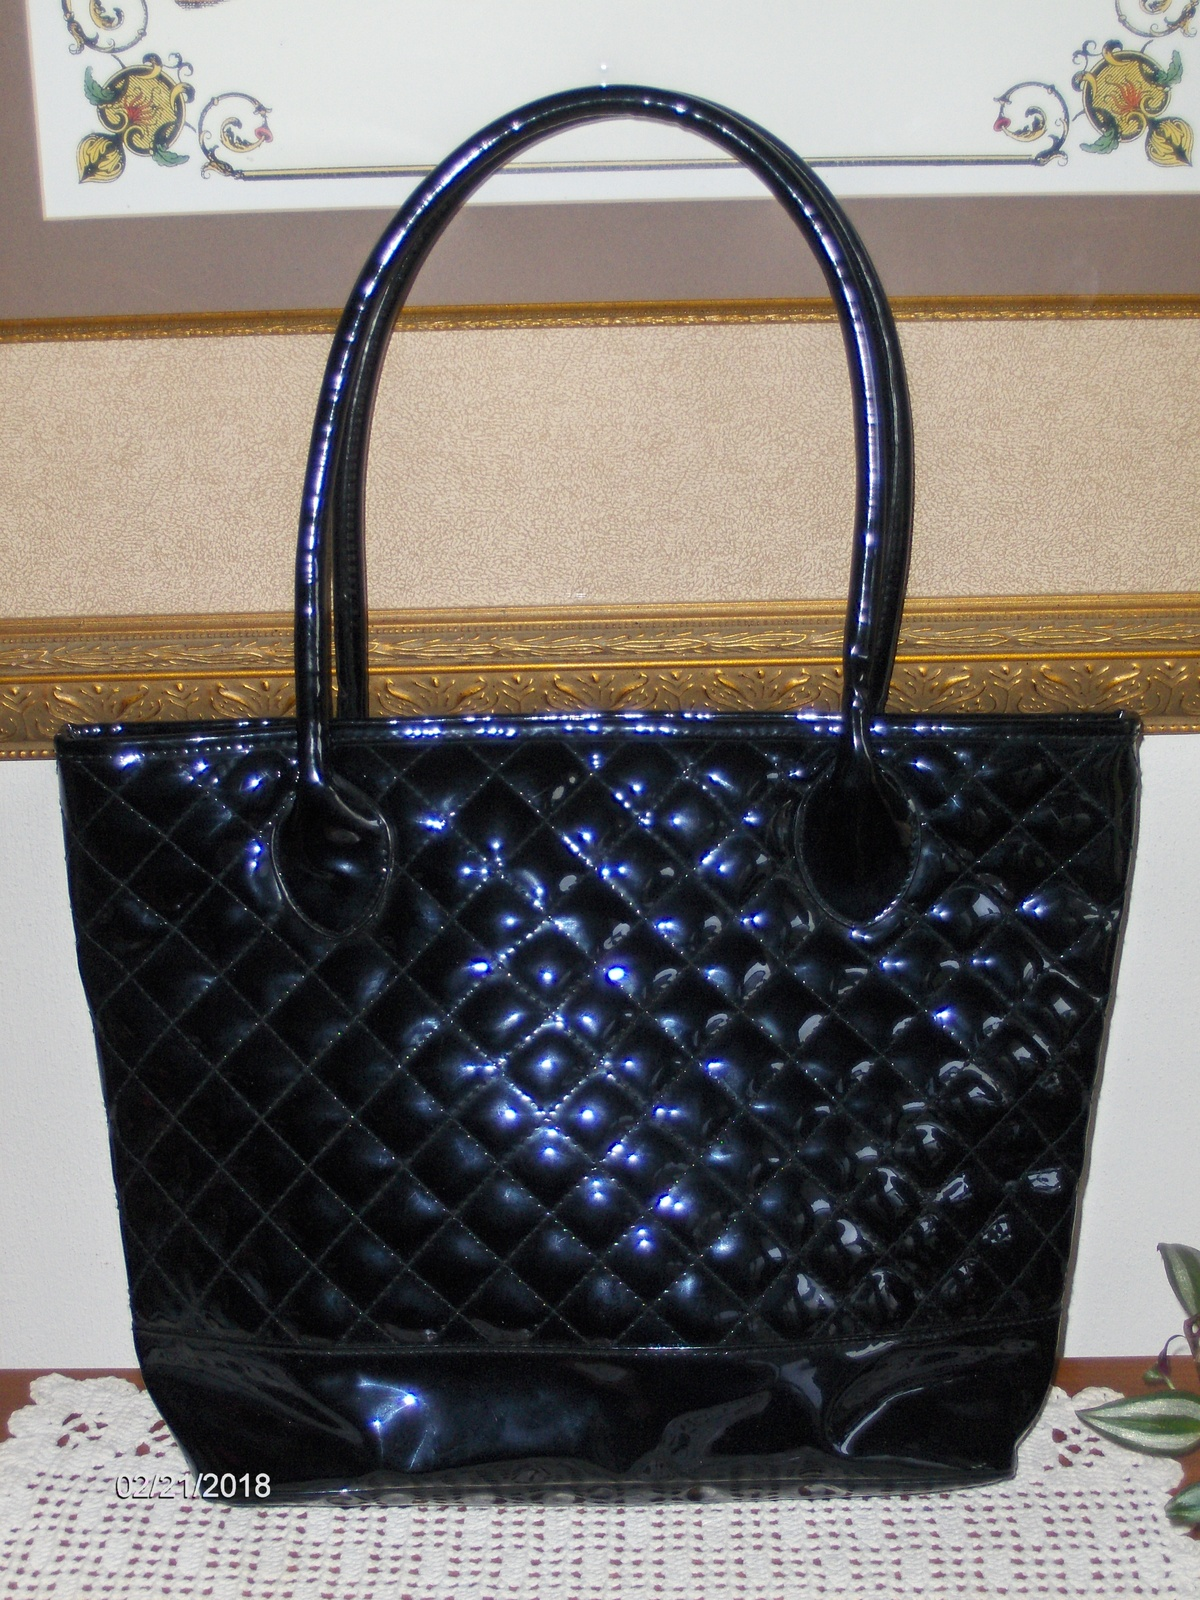 Nordstrom Black Tote Bag Quilted Shopper Handbag Satchel Purse Large